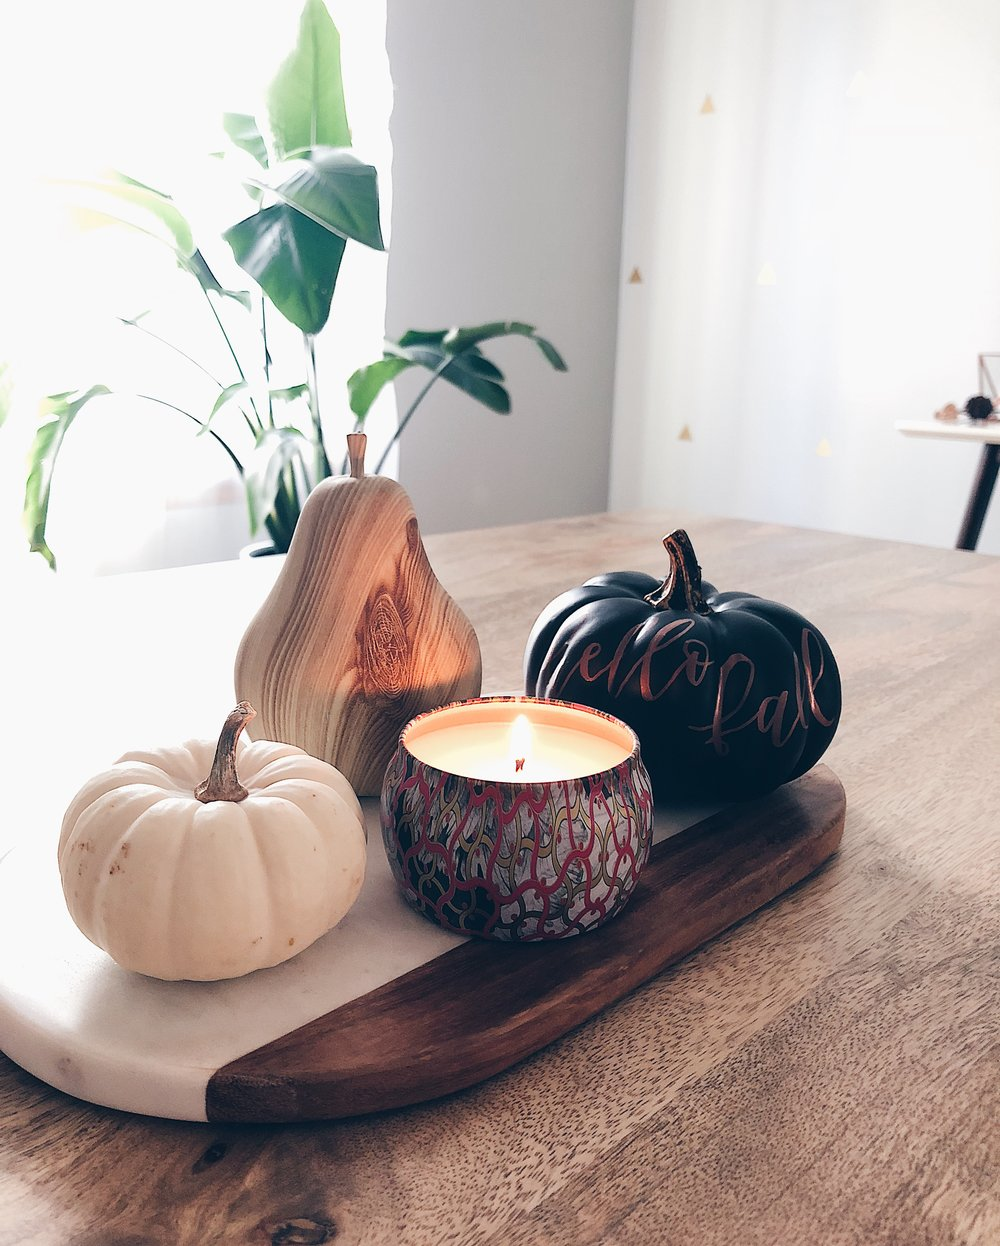 Sources:  Marble Tray (Similar)  /  Voluspa Candle  / Faux Wood Pear: Target / Black Faux Pumpkin: Target / White Pumpkin: Trader Joe's